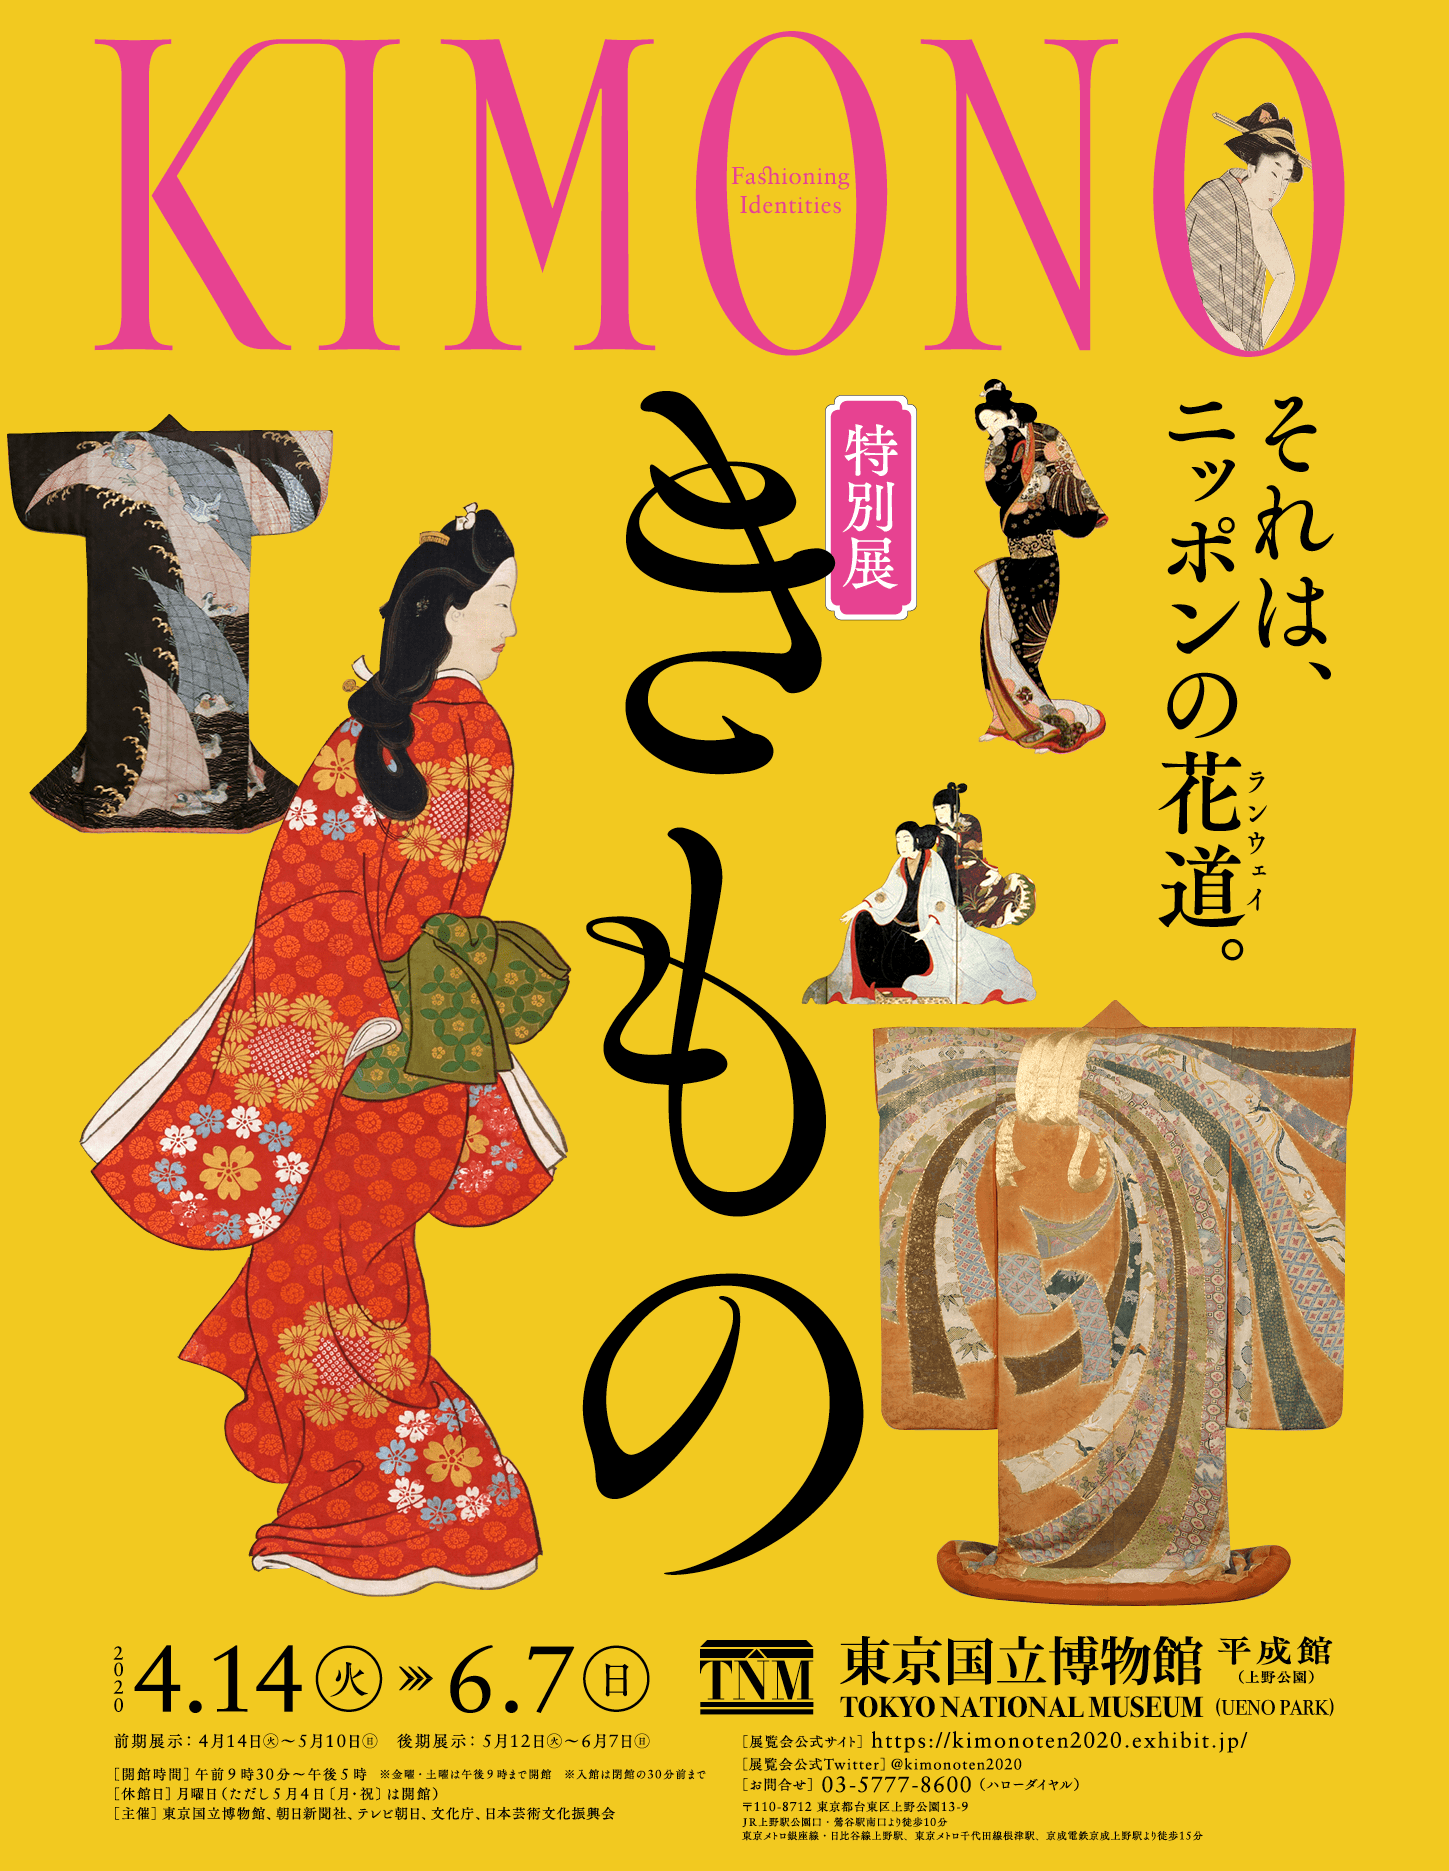 Sixteen kimono created by Itchiku Kubota to be exhibited at Tokyo National Museum